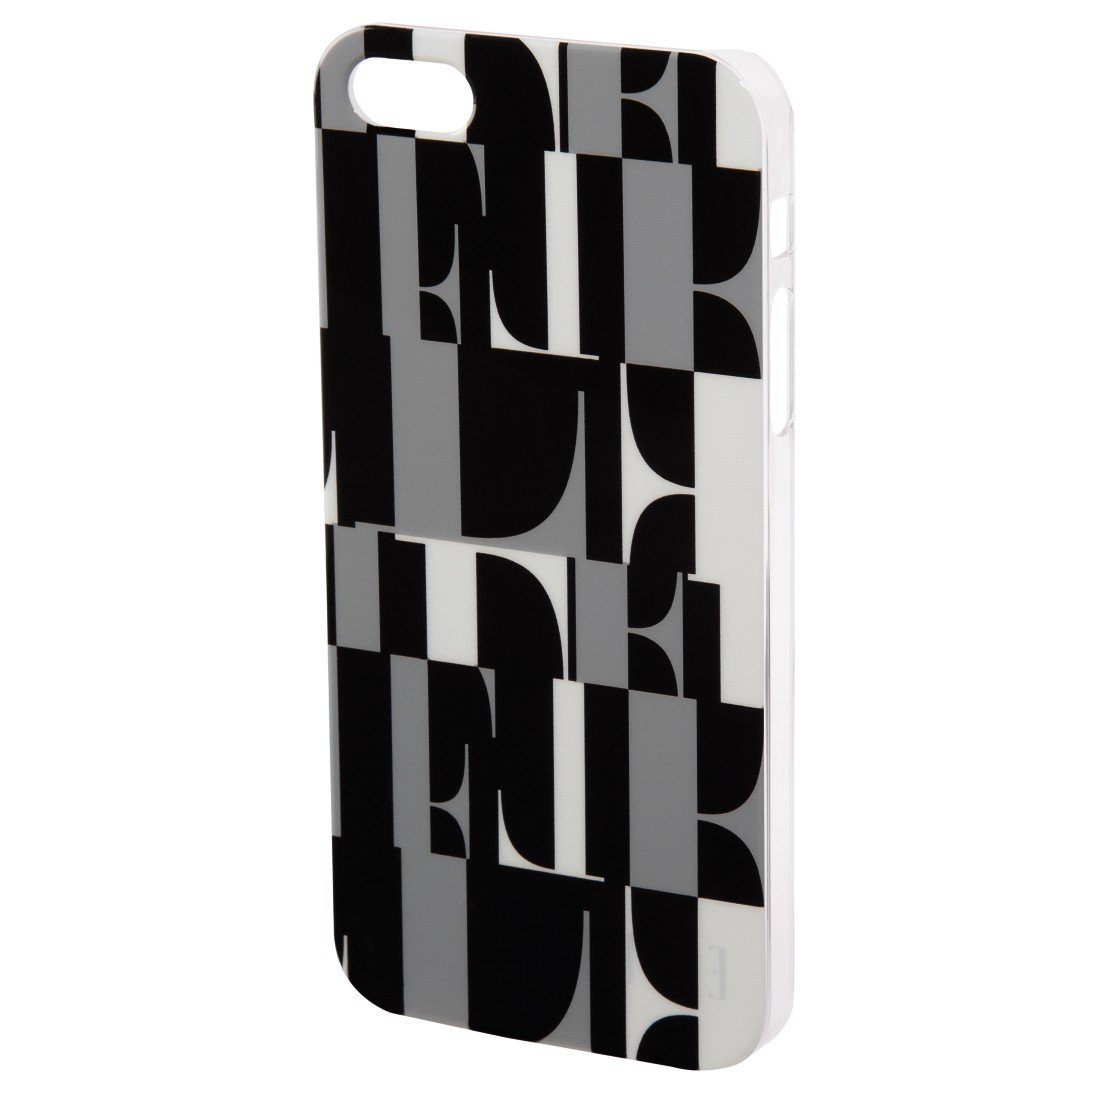 ELLE Handy-Cover ELLE original für Apple iPhone 5/5s/SE, Schwarz